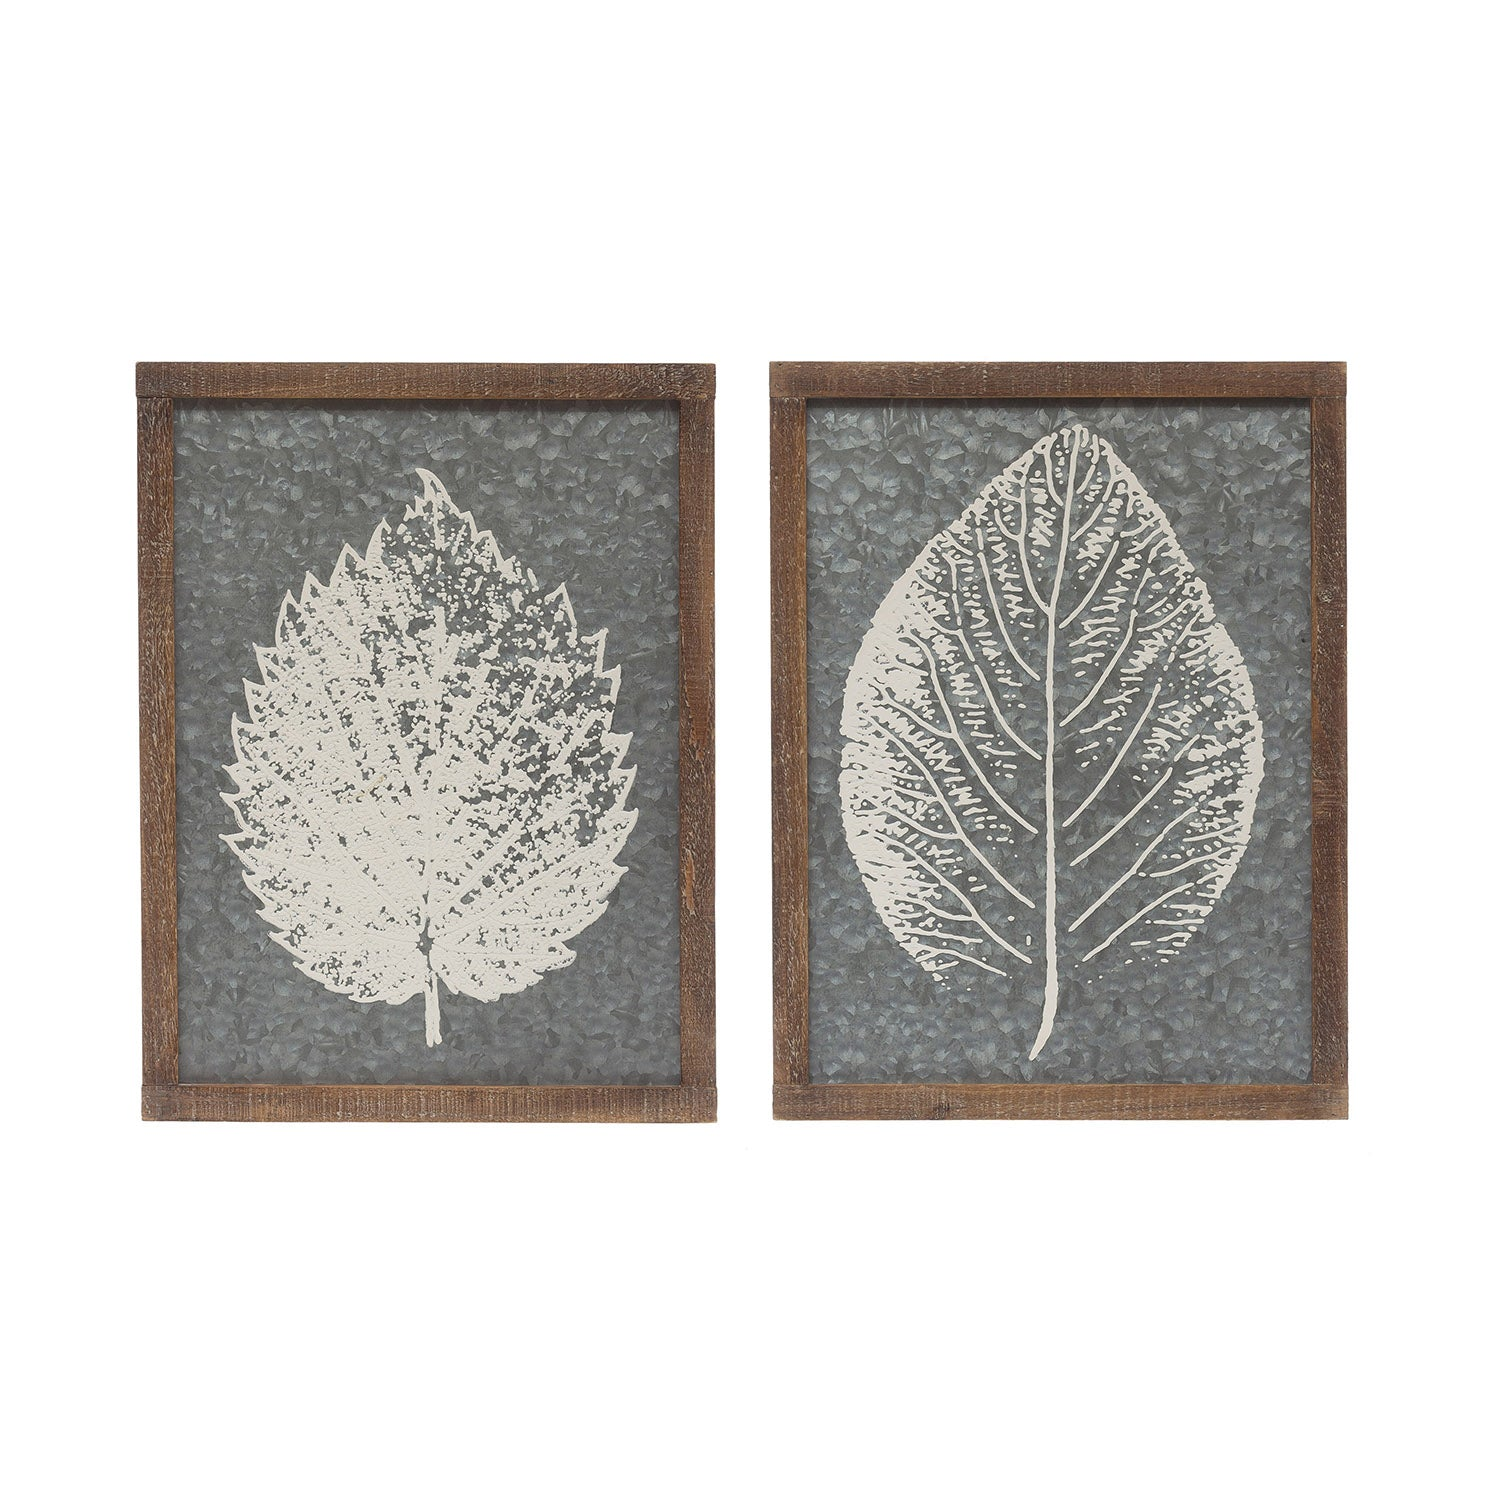 "12-1/2""W x 16-1/2""H Wood Framed Galvanized Metal Wall Décor w/ Leaf Image, 2 Styles"